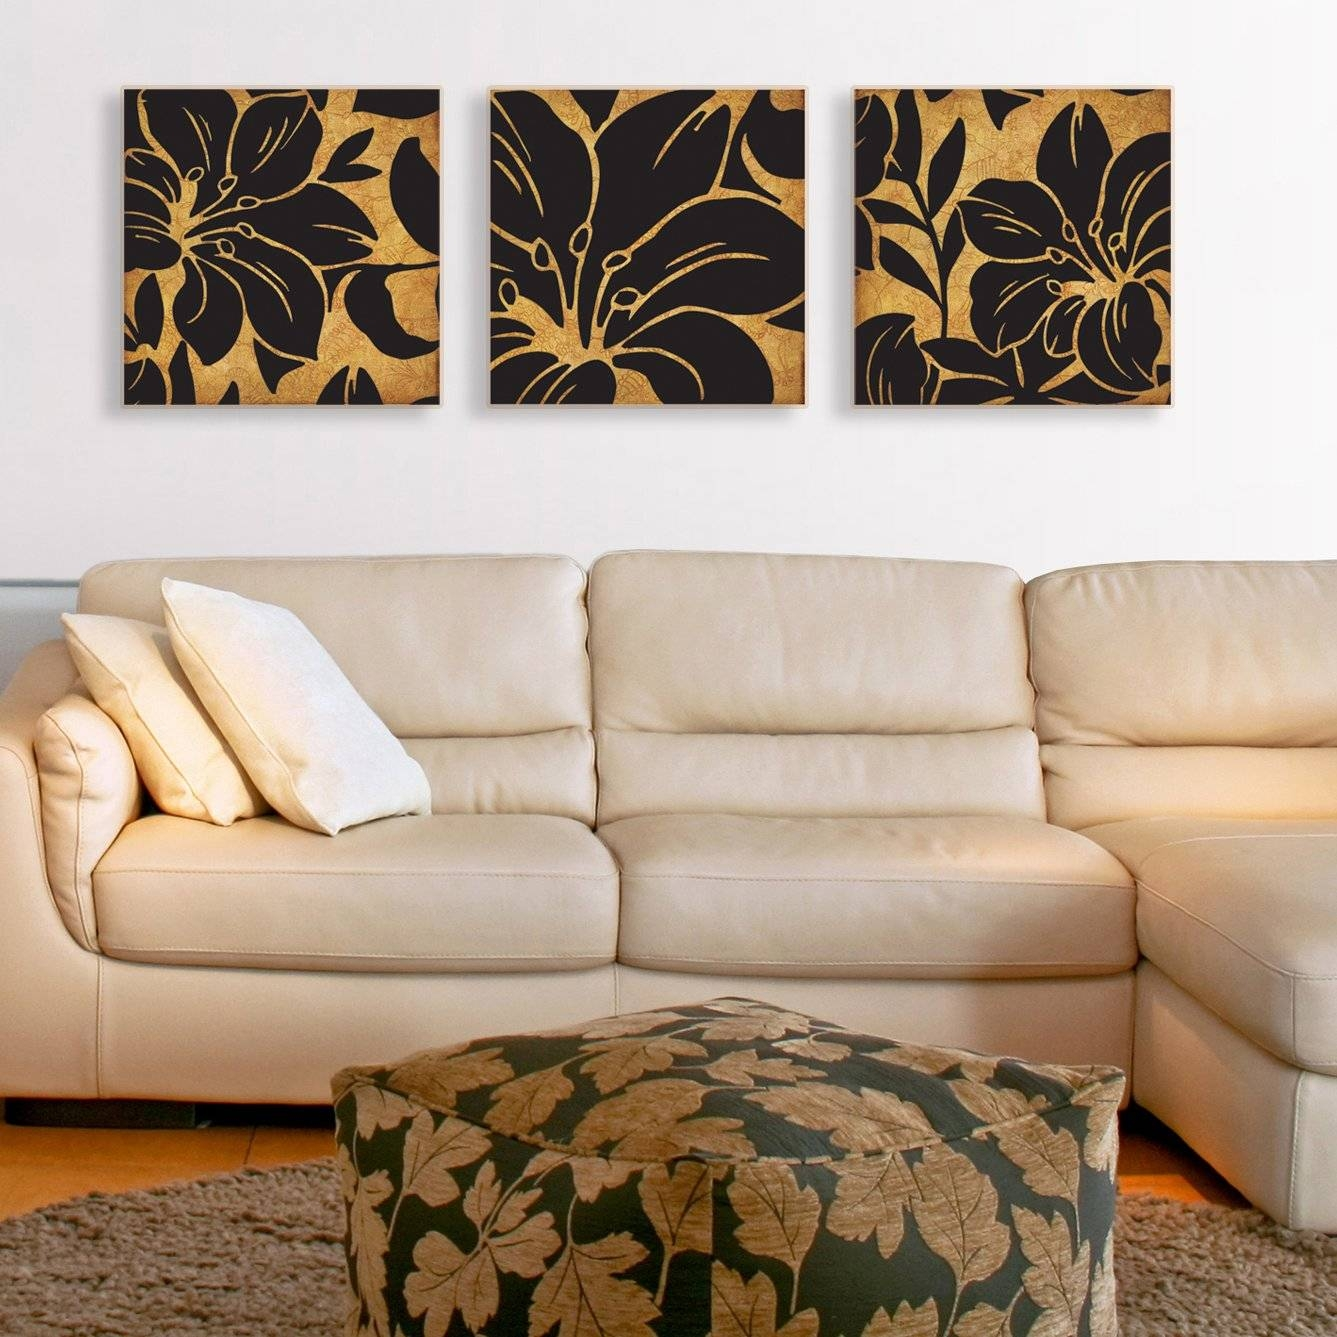 Canvas Wall Art Sets | Roselawnlutheran For Latest Large Canvas Wall Art Sets (View 15 of 15)